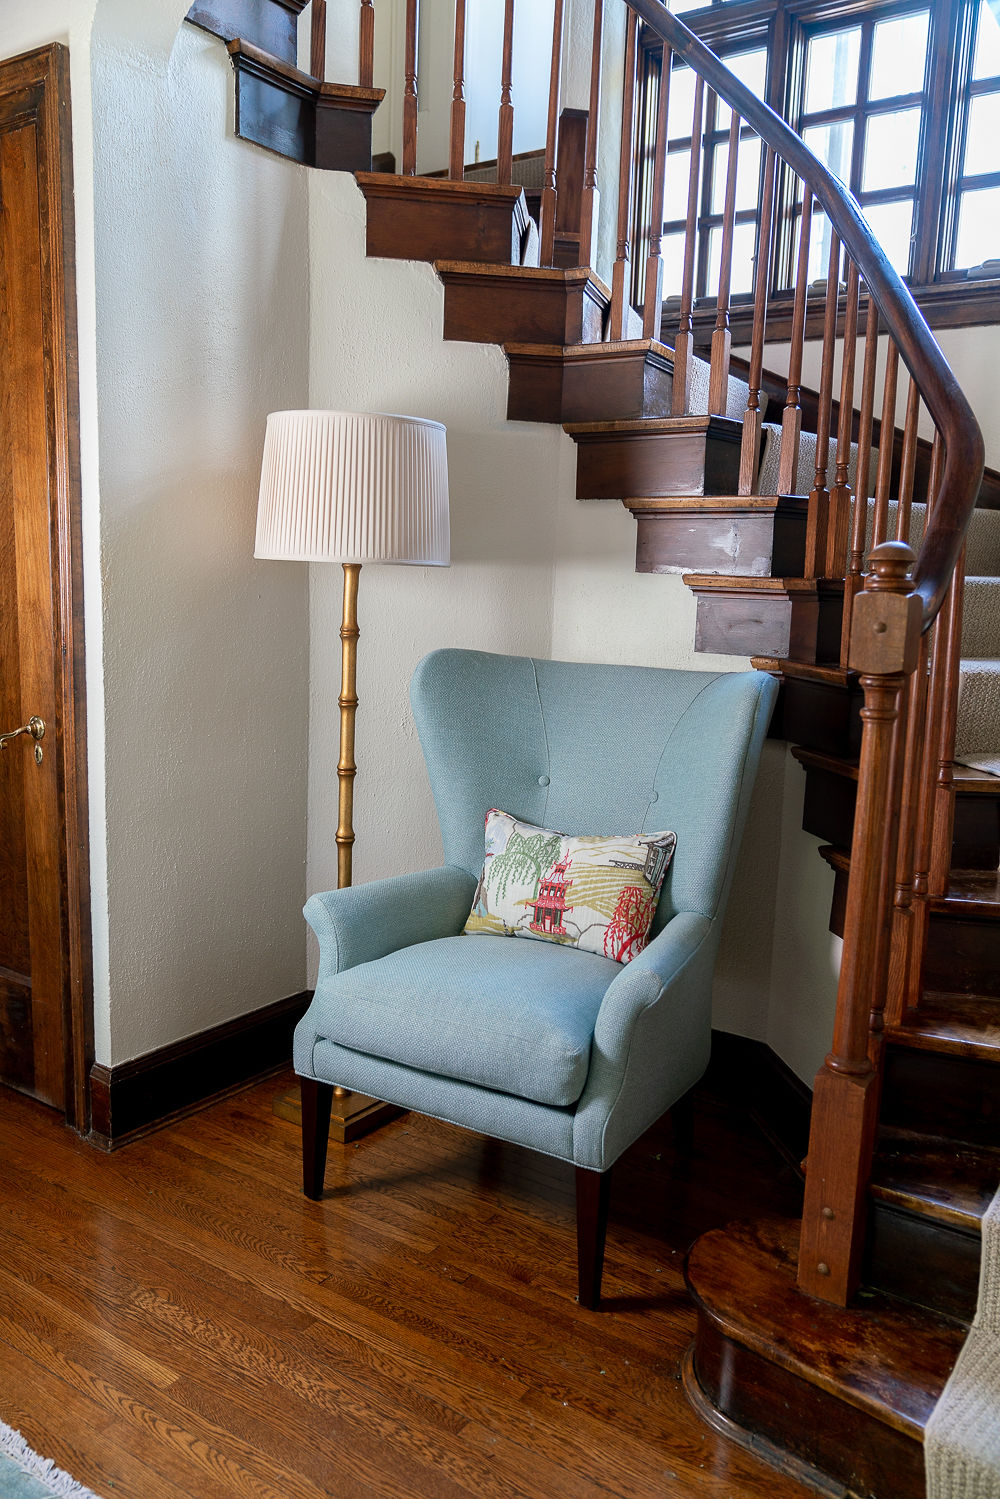 Wooden stairway with armchair and floor lamp